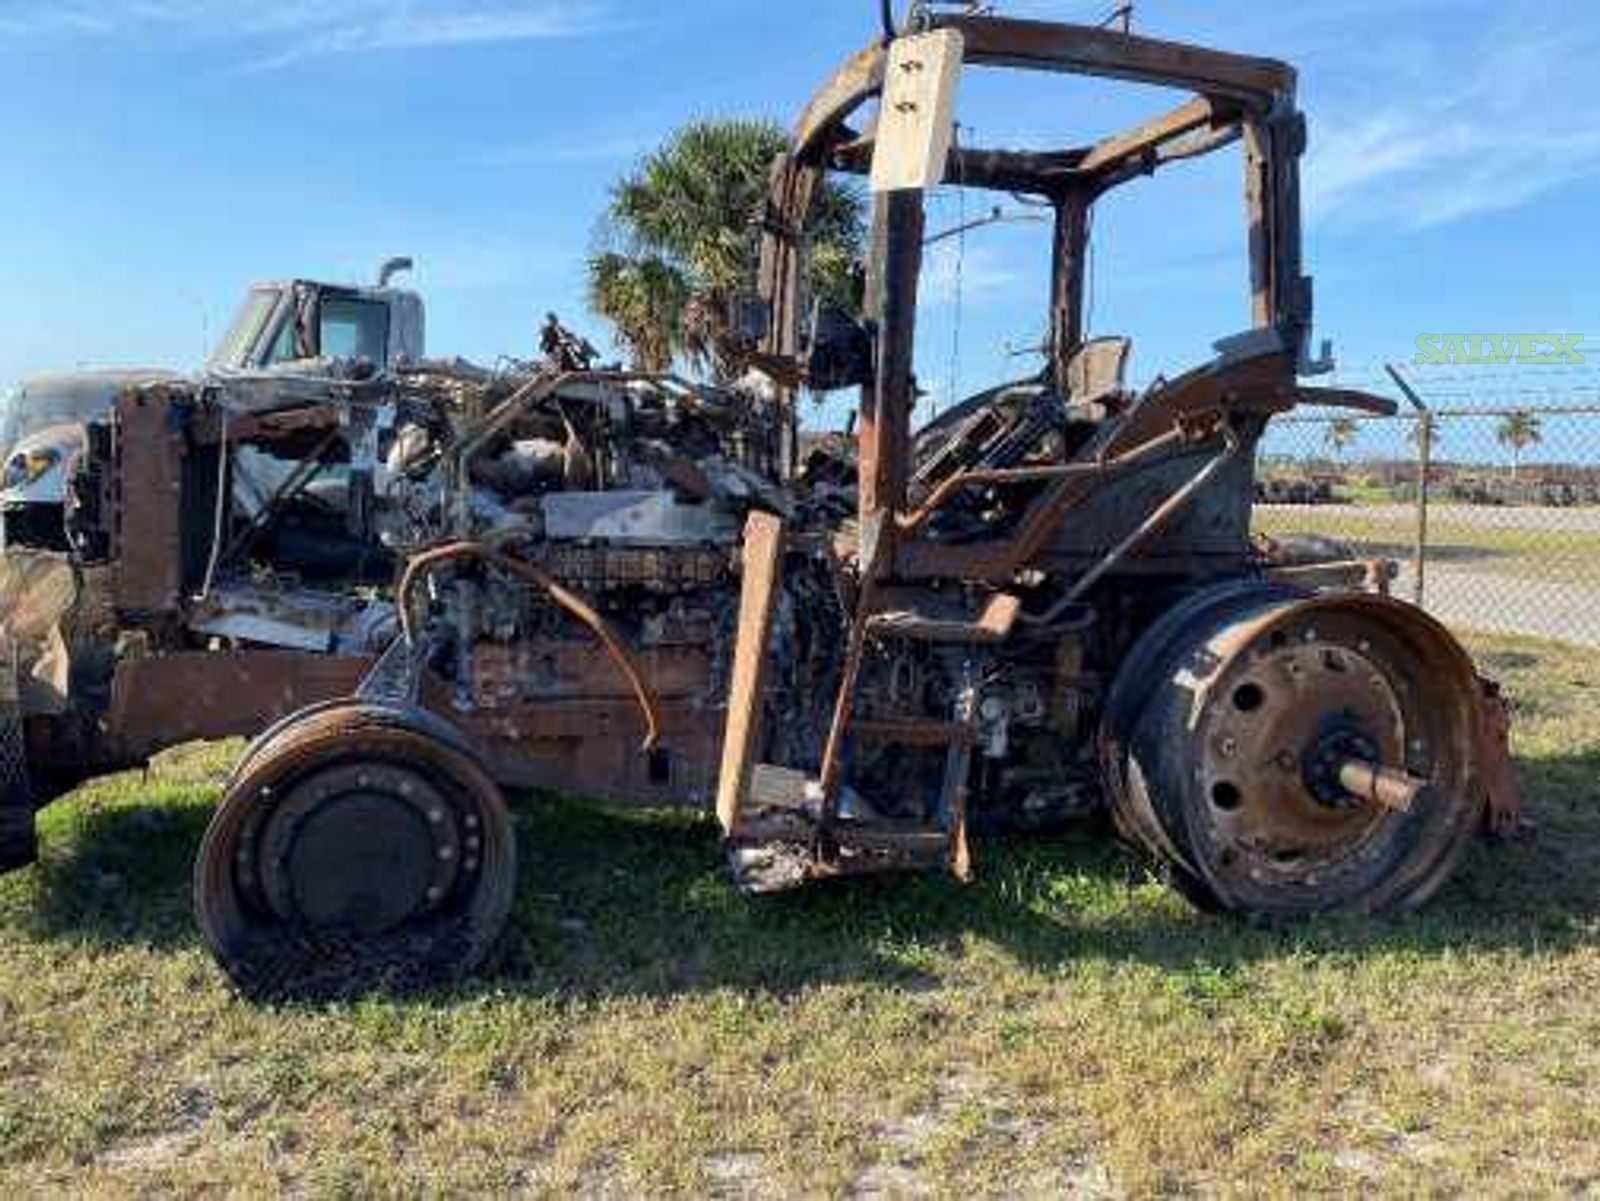 7210R John Deere Rental Tractor, 2018 (Burned)